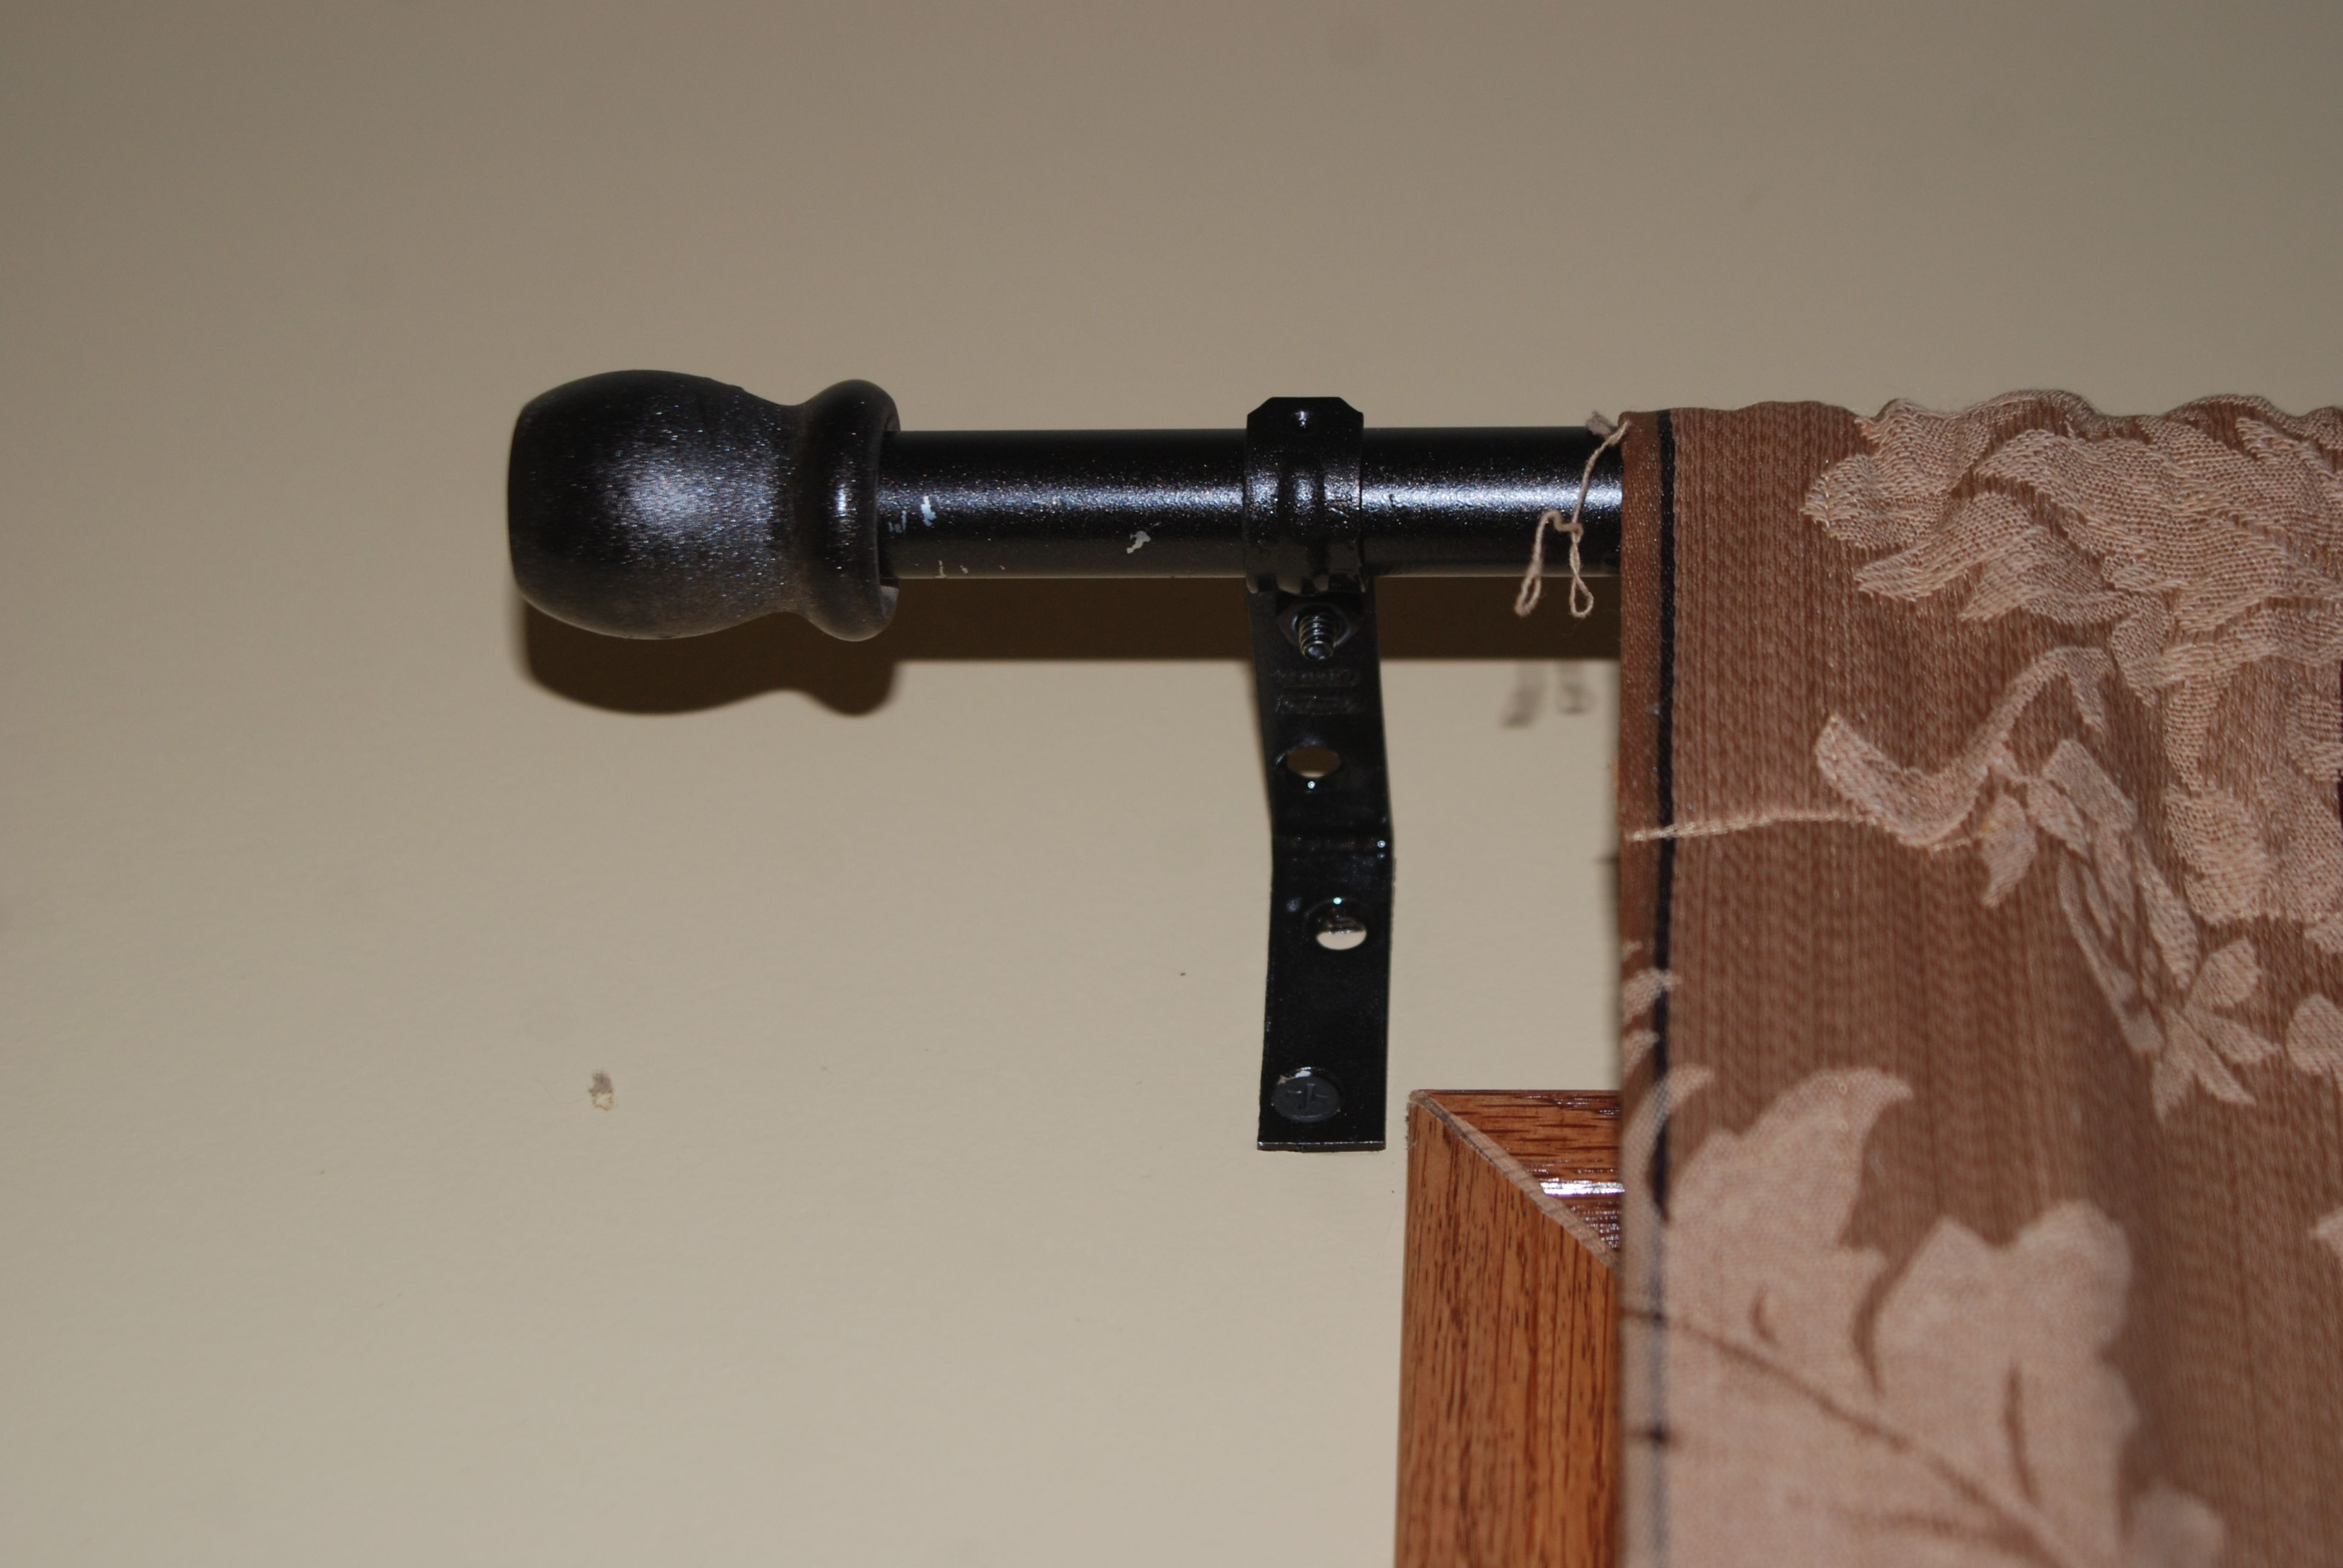 Diy Curtain Rods For The Living Room 1 2 Electrical Conduit 2